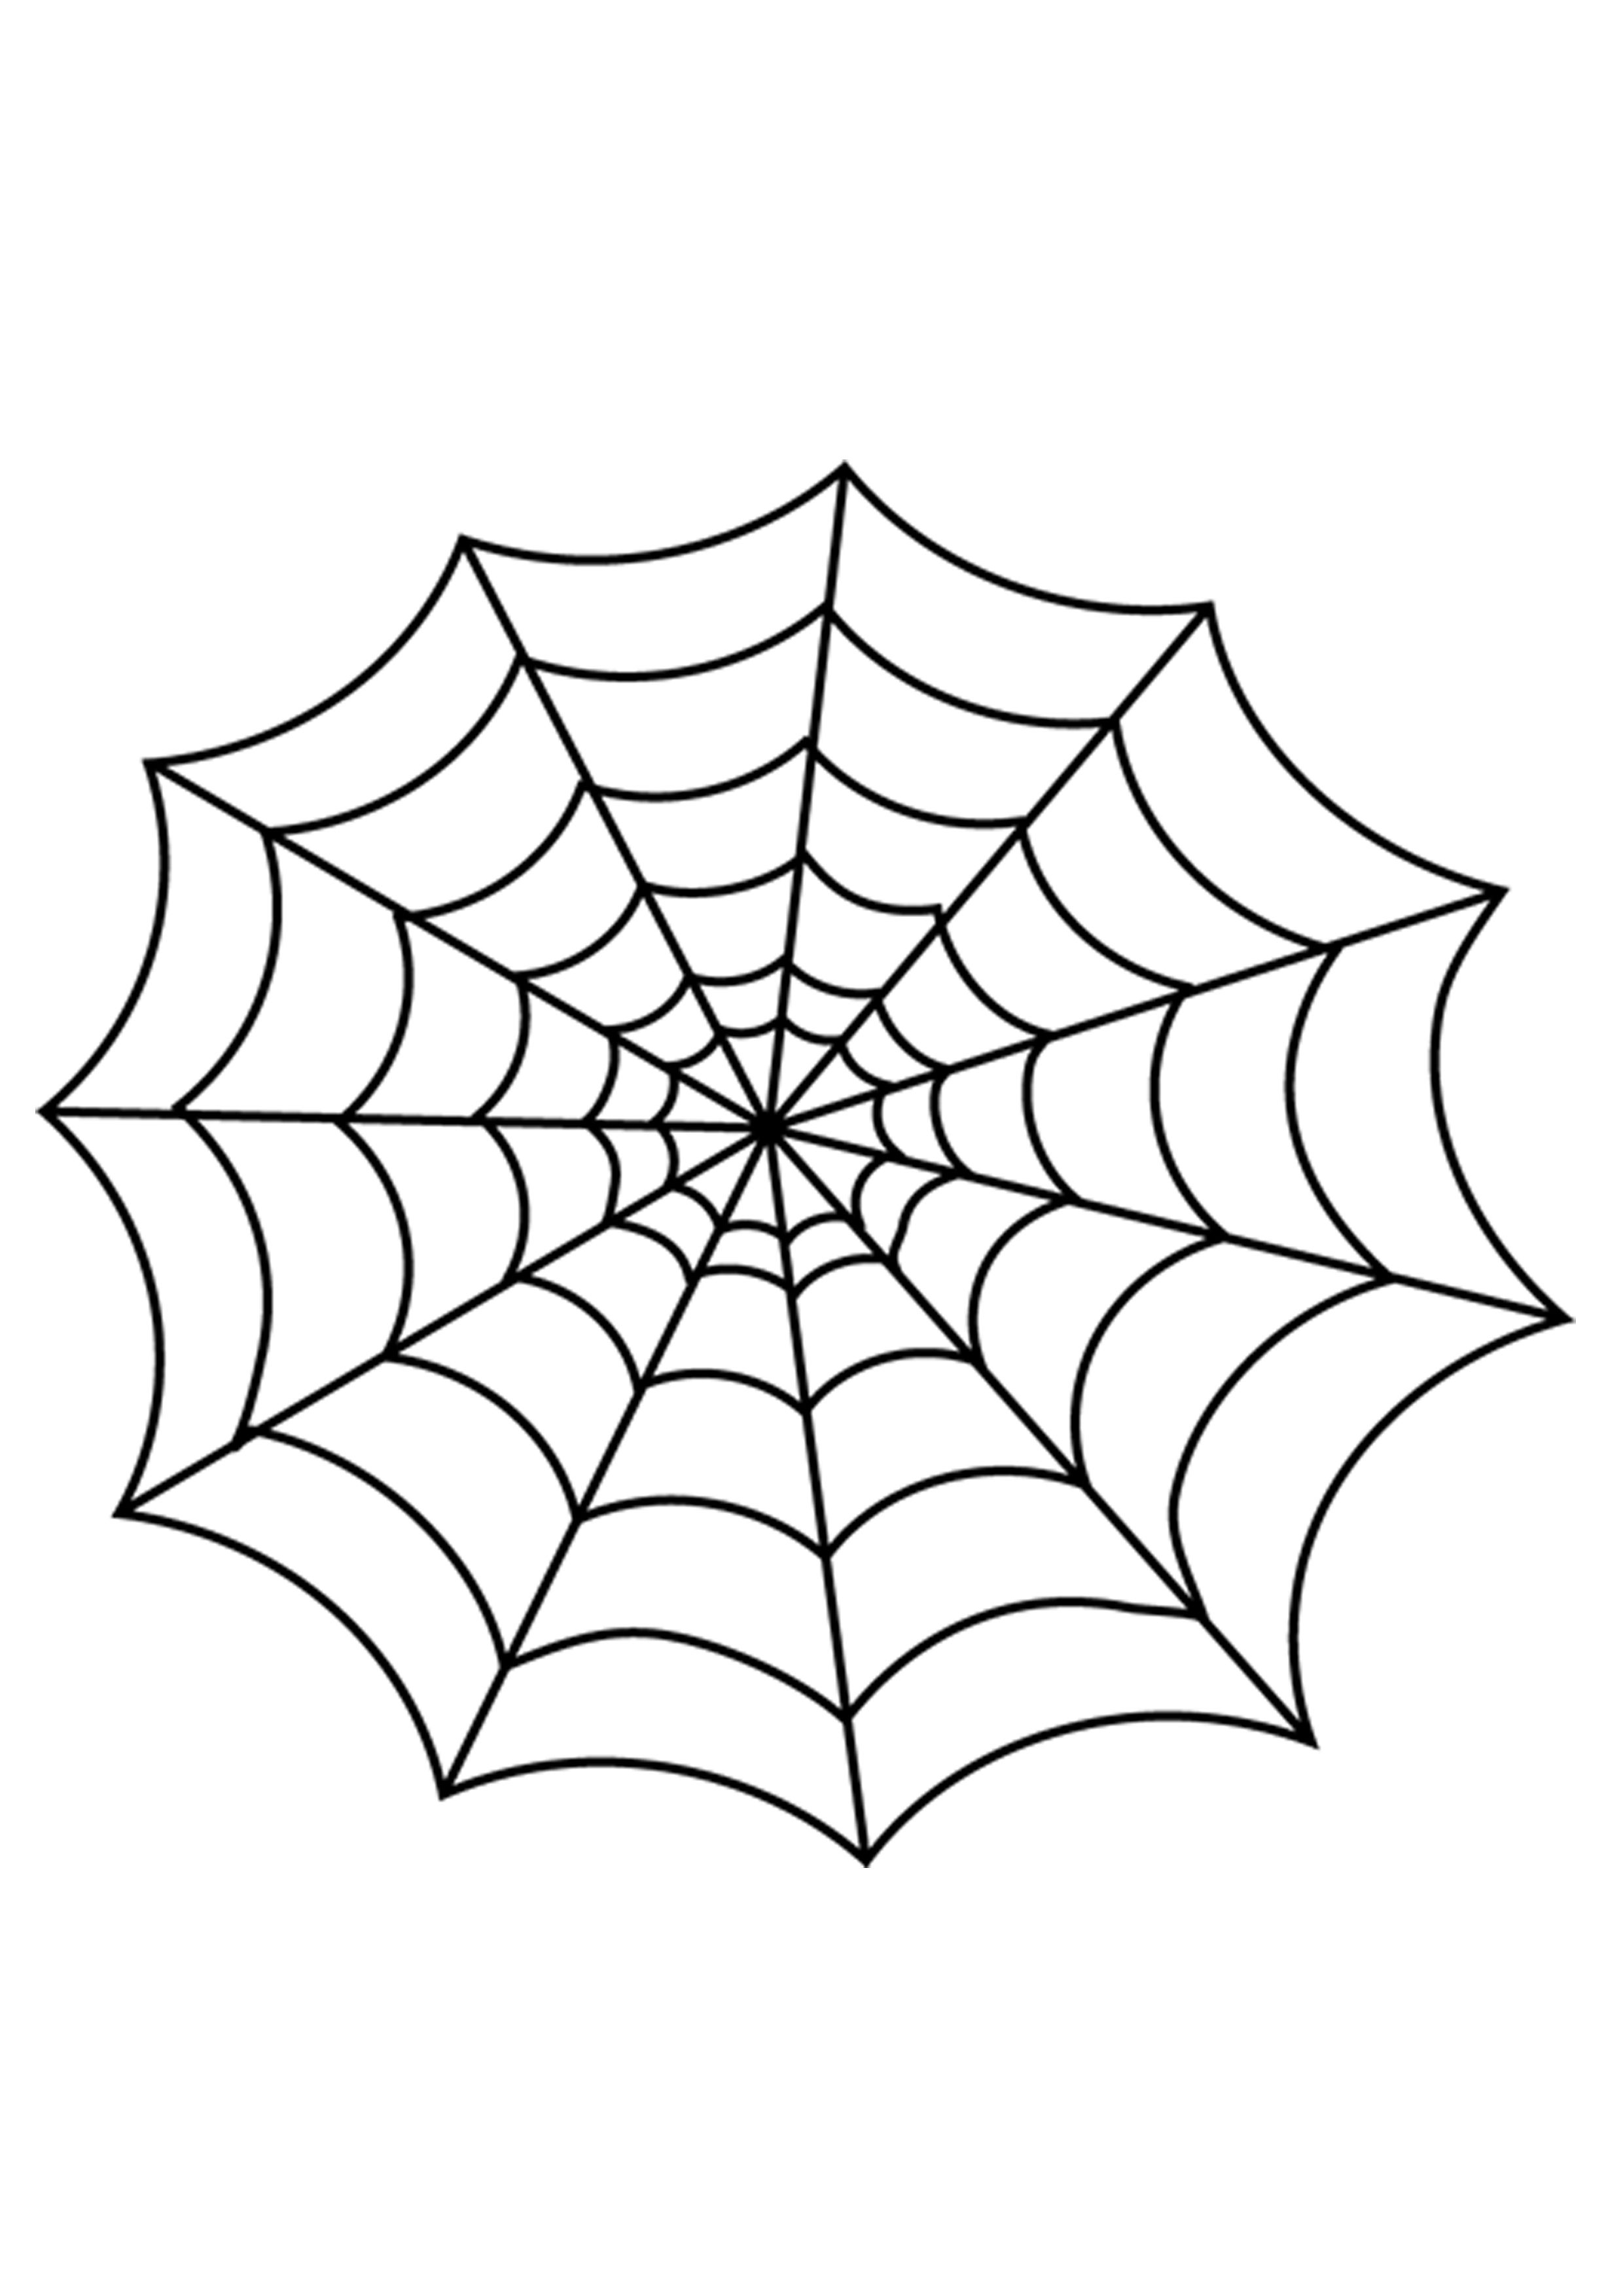 14 Decoration Drawing Halloween For Free Download On Ayoqq - Spider Web Stencil Free Printable